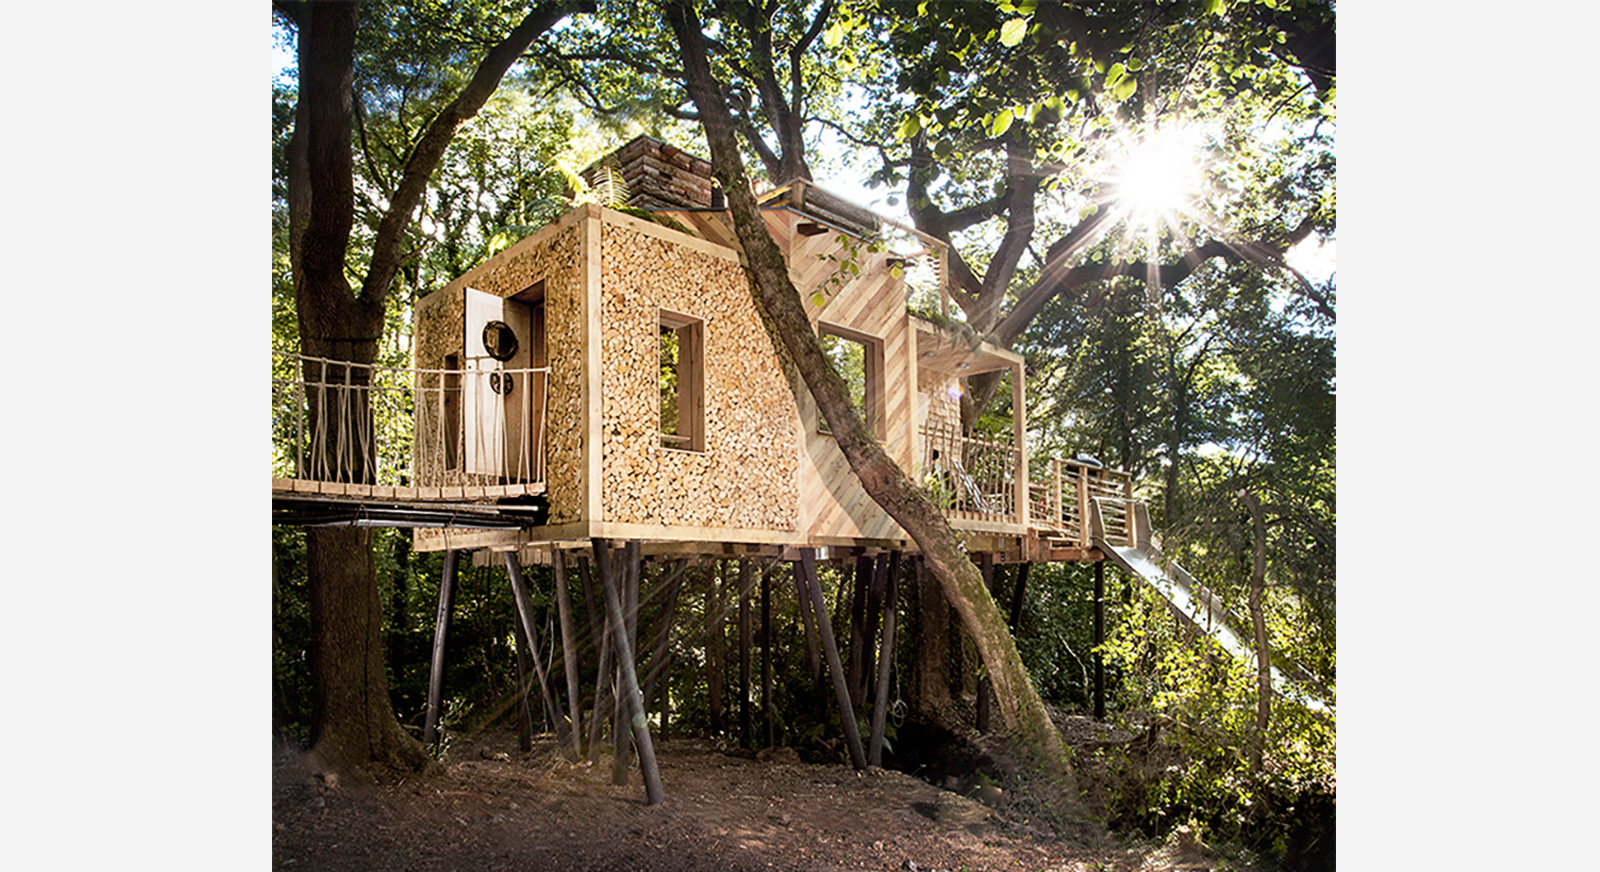 Holiday home for rent: Woodman's Treehouse in Dorset